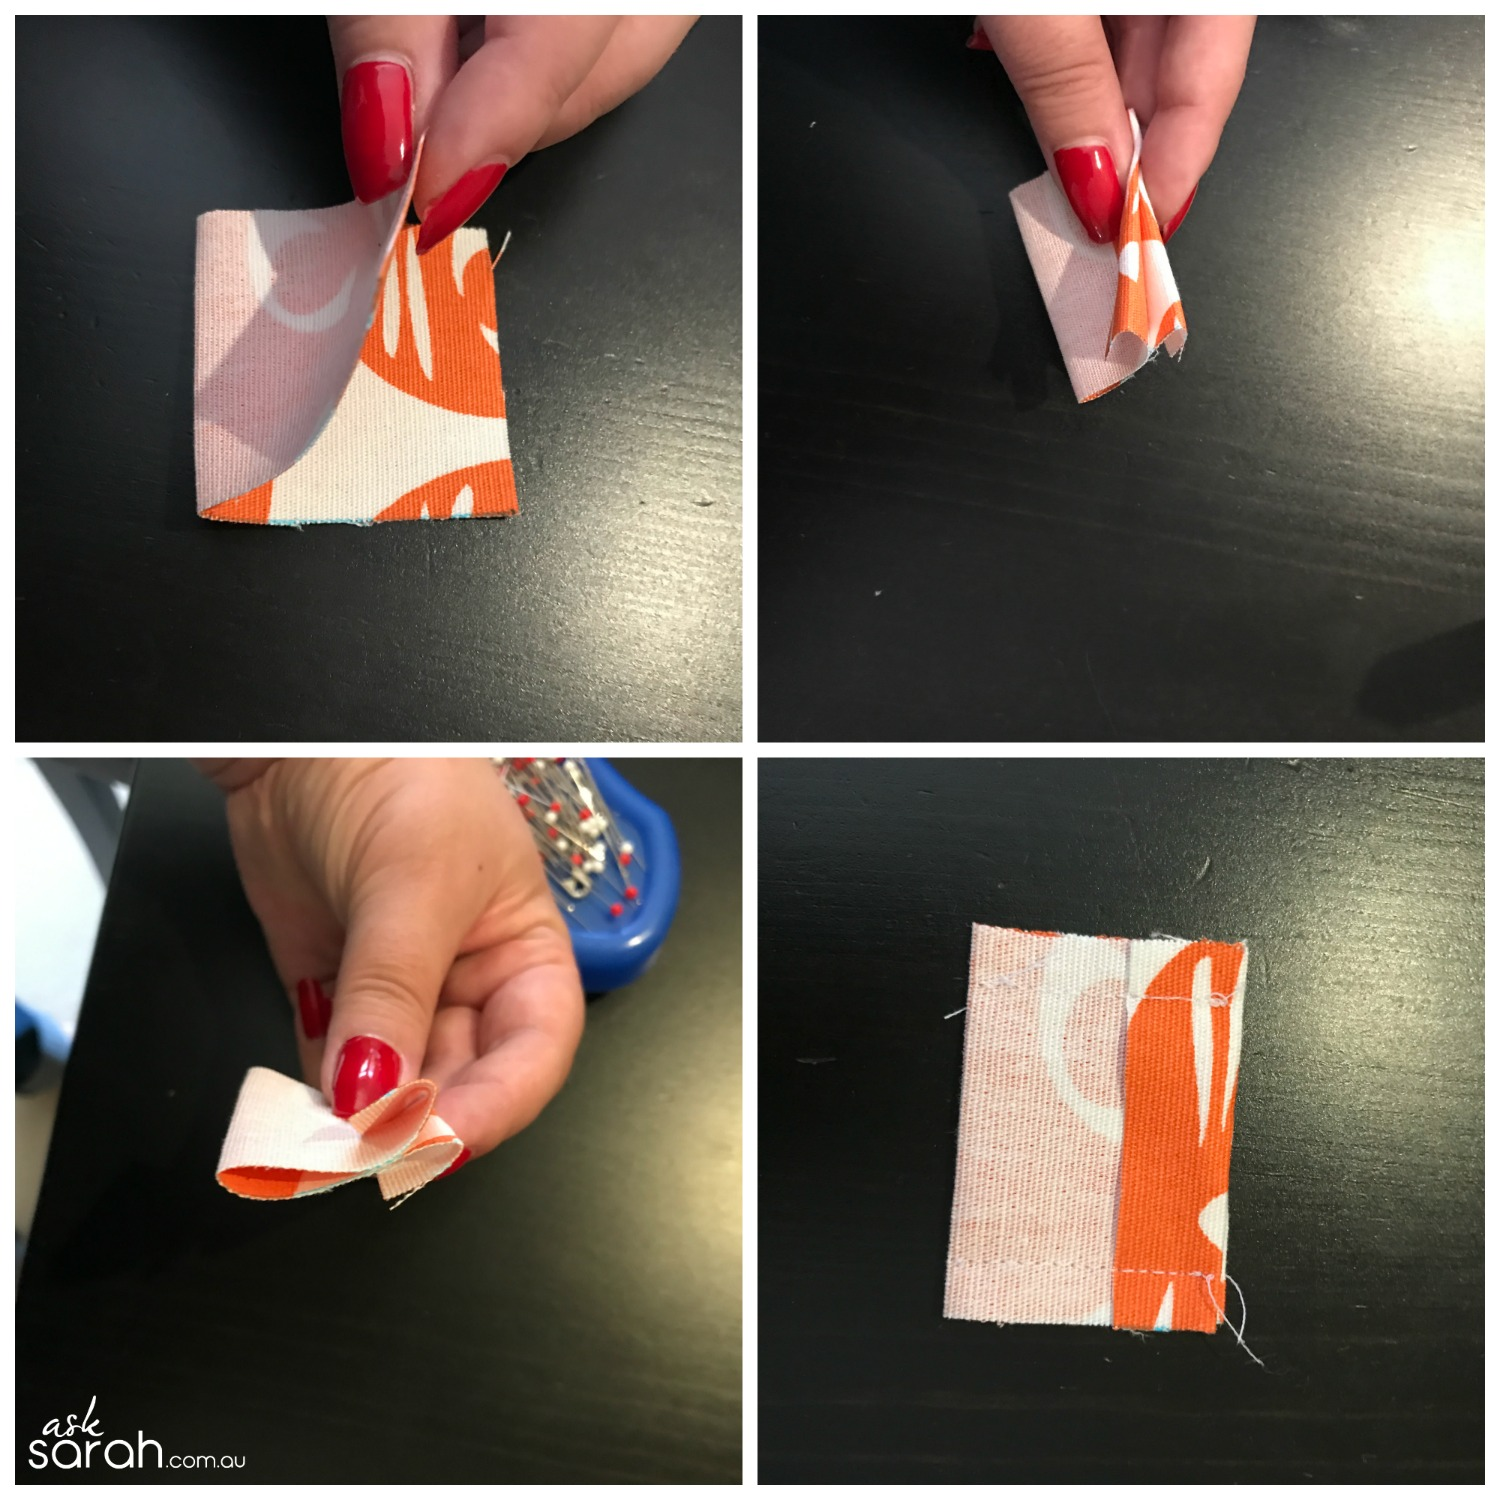 Sew How To Add A Tab To A Zipper {And How Shorten It Too} - Step 1